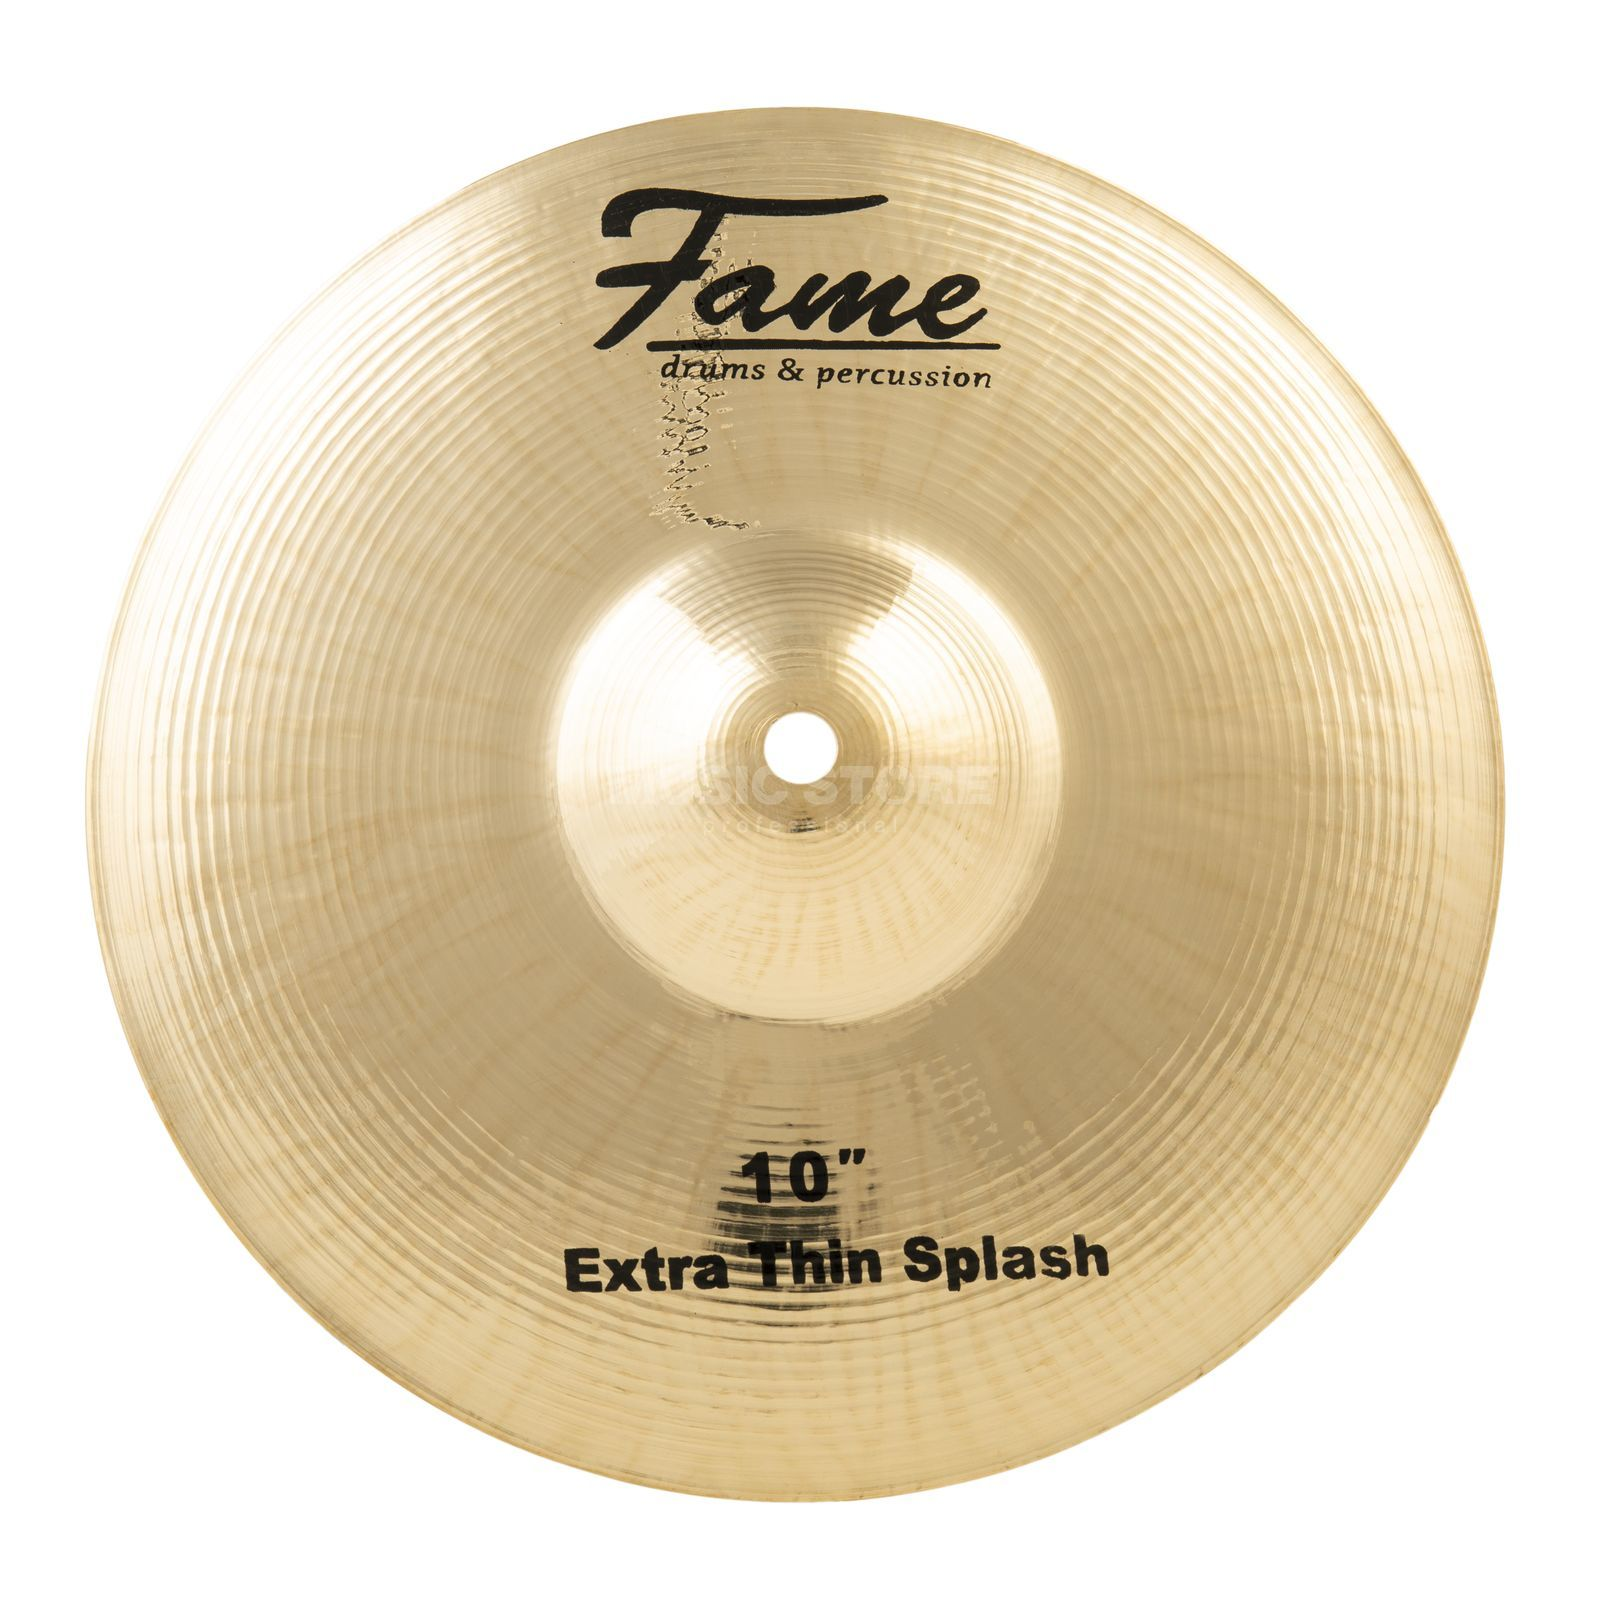 "Fame Masters B20 Extra Thin Splash, 10"", Natural Finish Produktbillede"